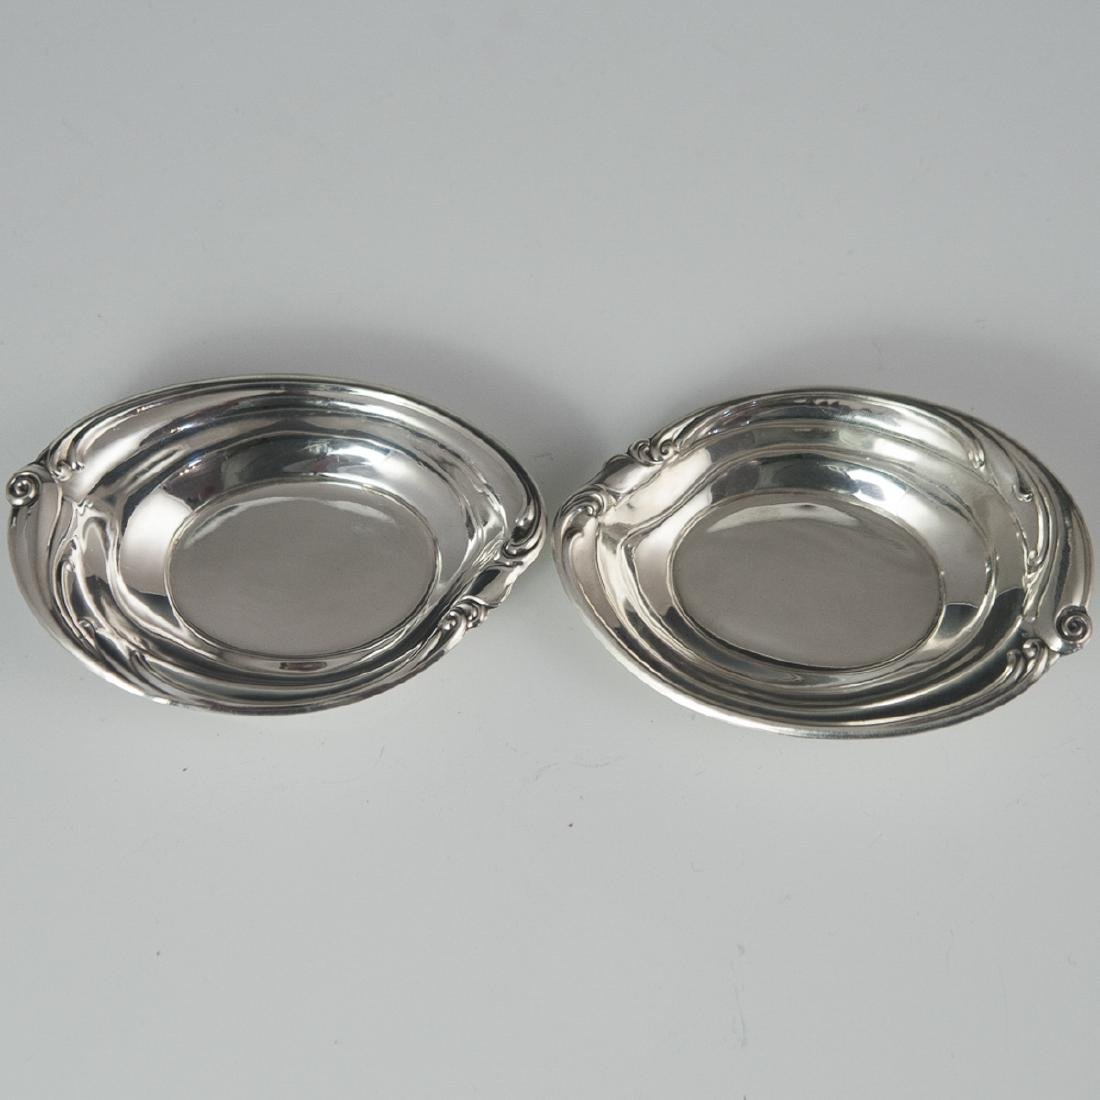 Wallace Sterling Bonbon Dishes